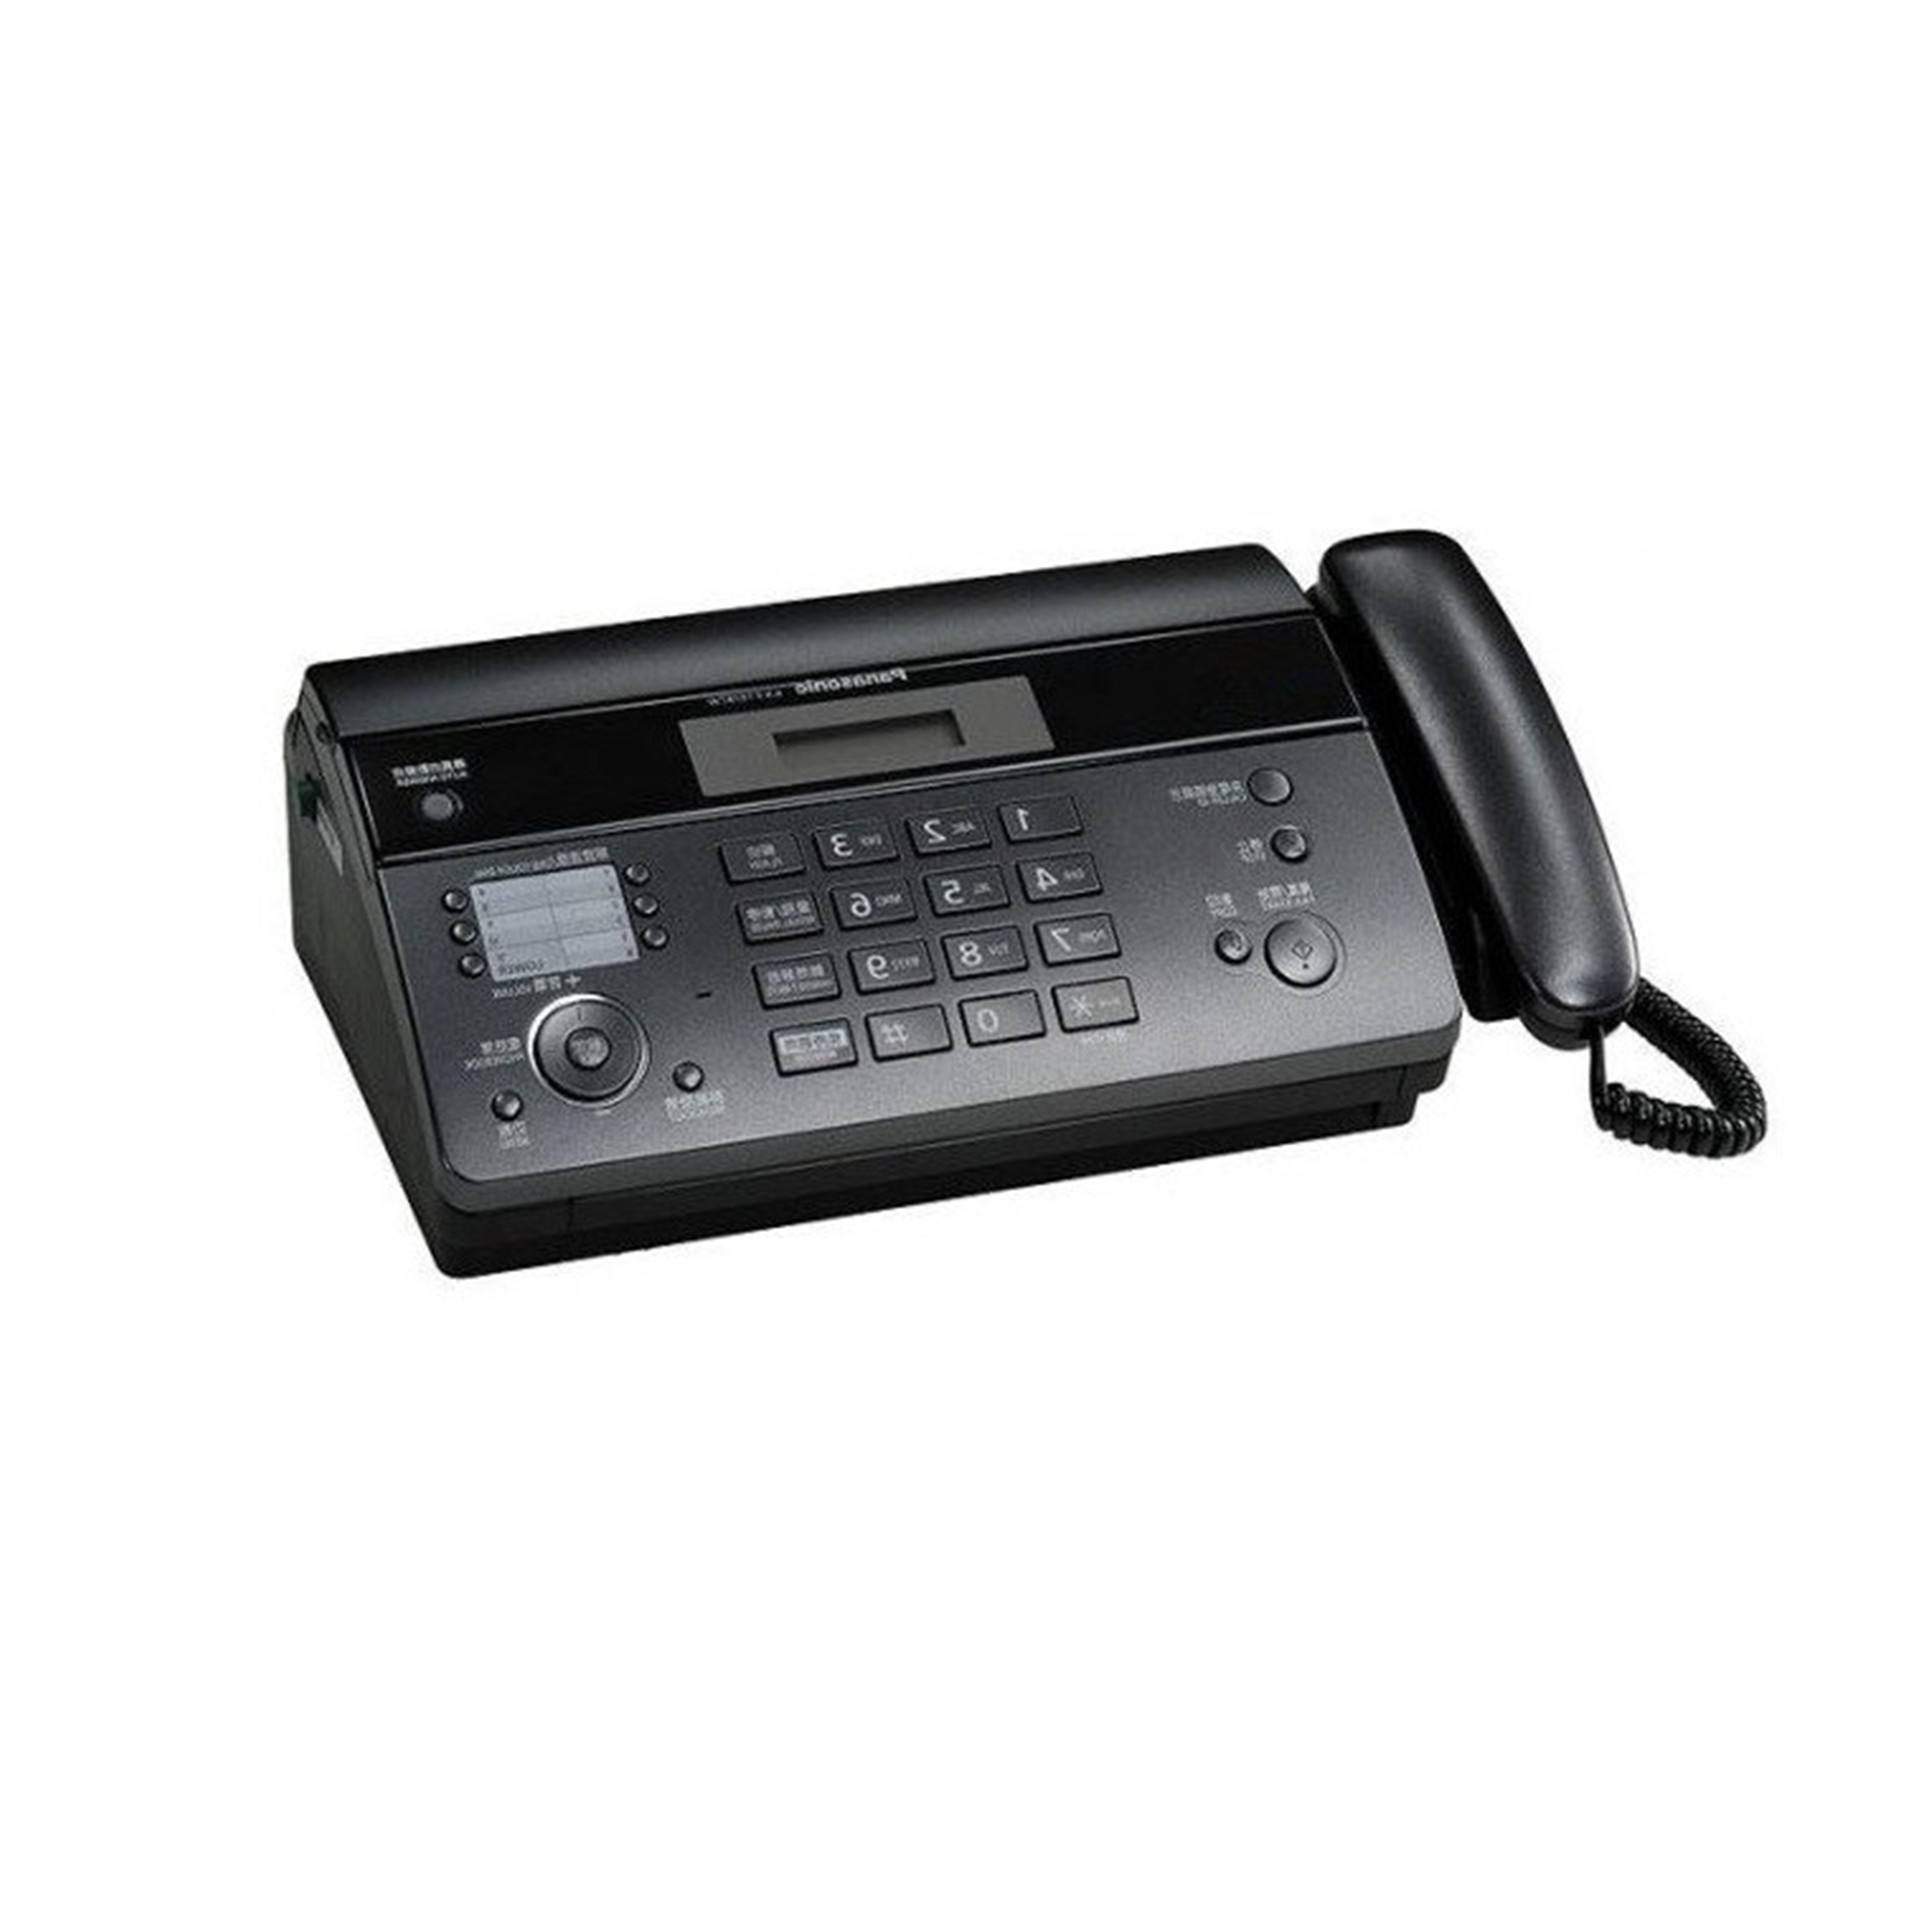 Wholesales Various styles Fax Machines